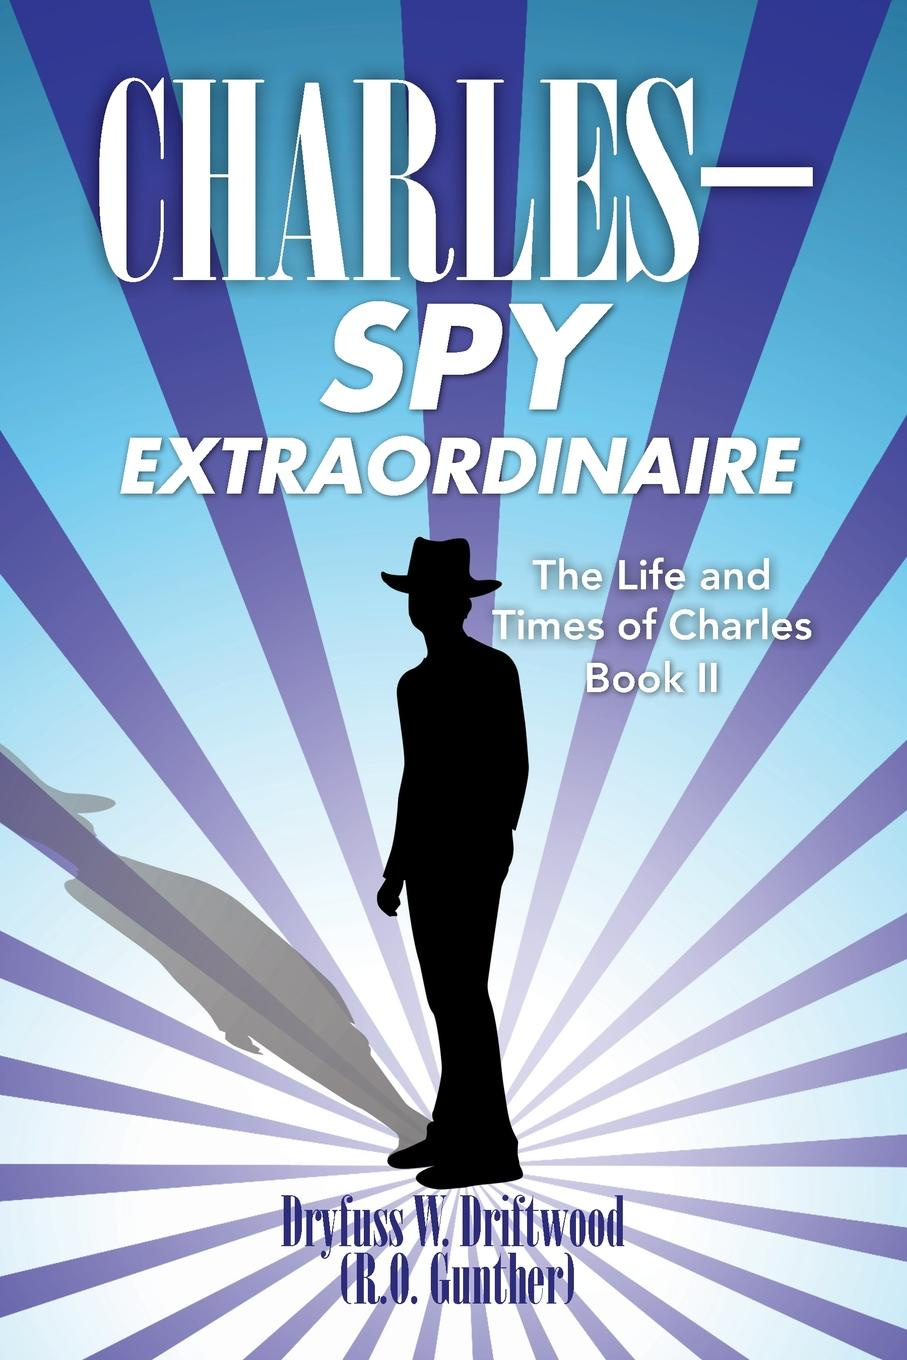 Dryfuss W. Driftwood The Life and Times of Charles. Book II: C H A R L E S Spy Extraordinaire c dubowski sabrina the teenage witch a dog s life